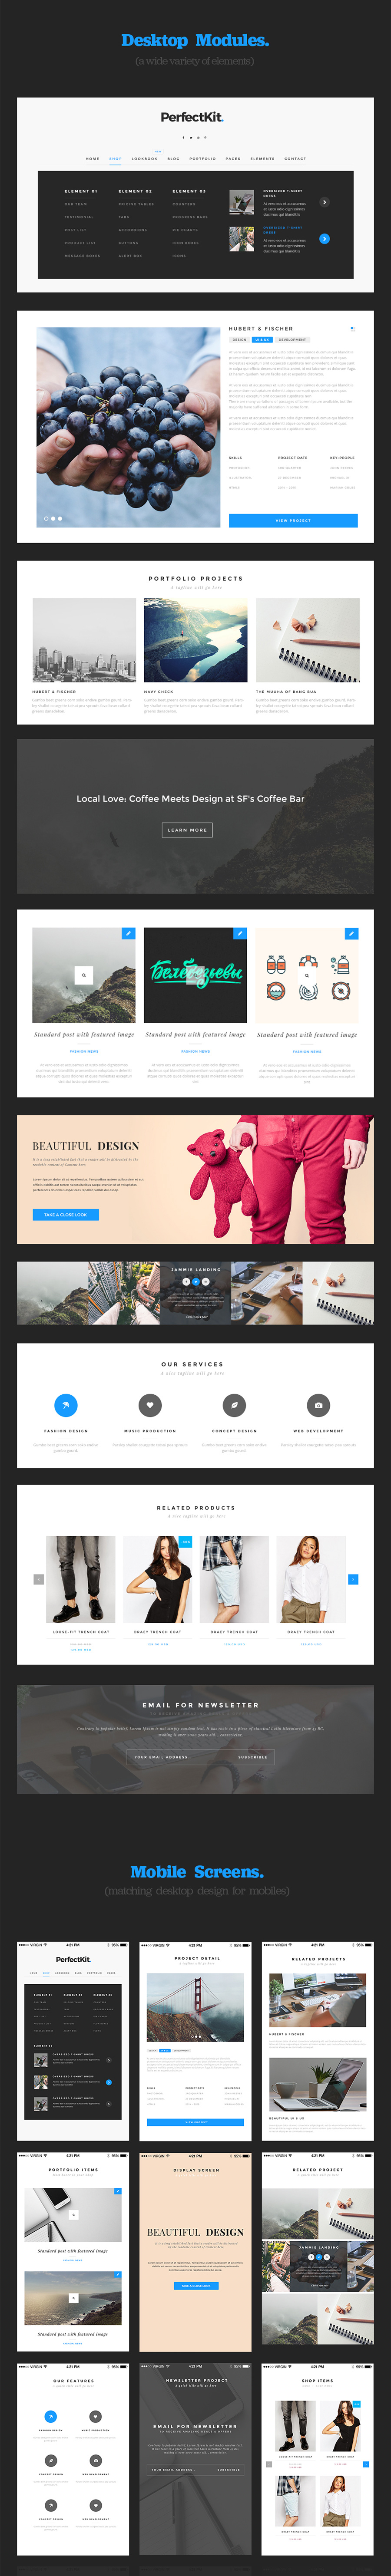 http://www.graphicsfuel.com/wp-content/uploads/2015/09/free-ui-kit-elements.jpg